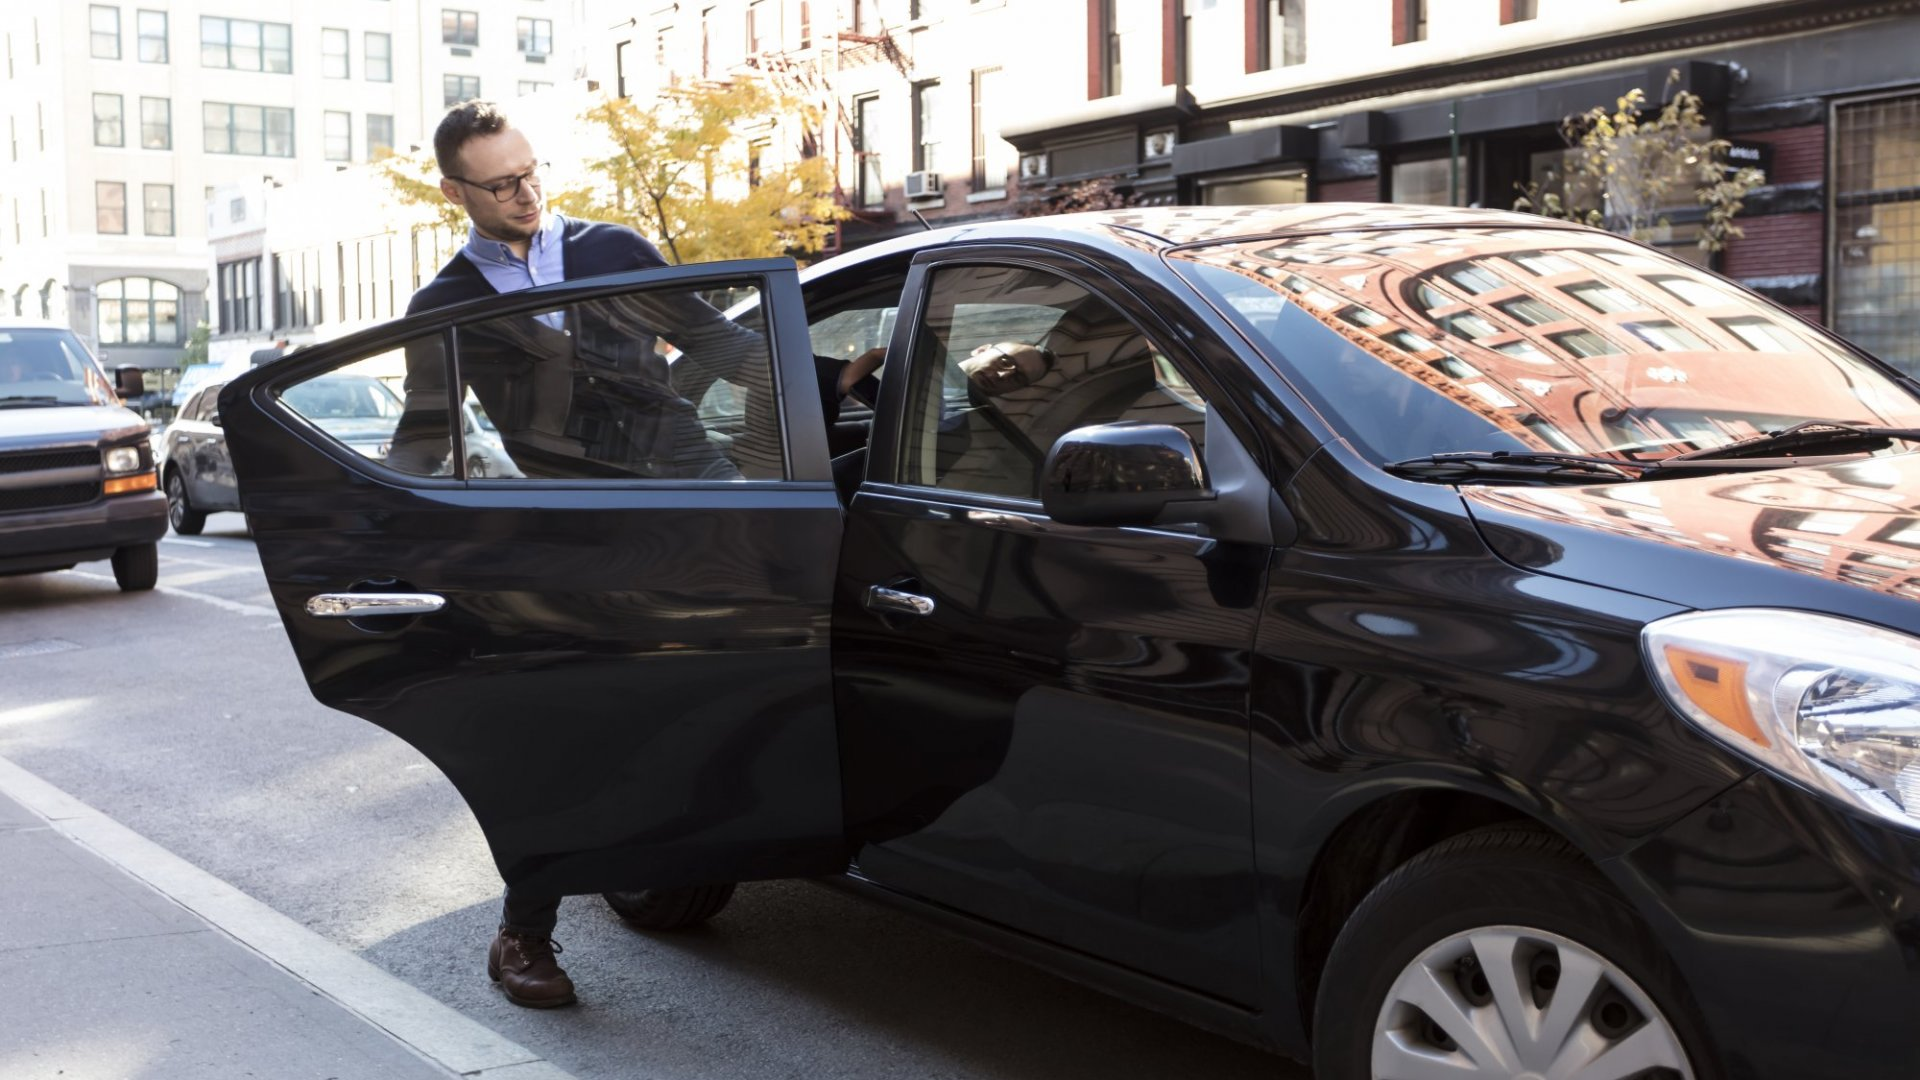 How Uber's Start-Up Culture Is Hurting Them and What's Needed To Fix It